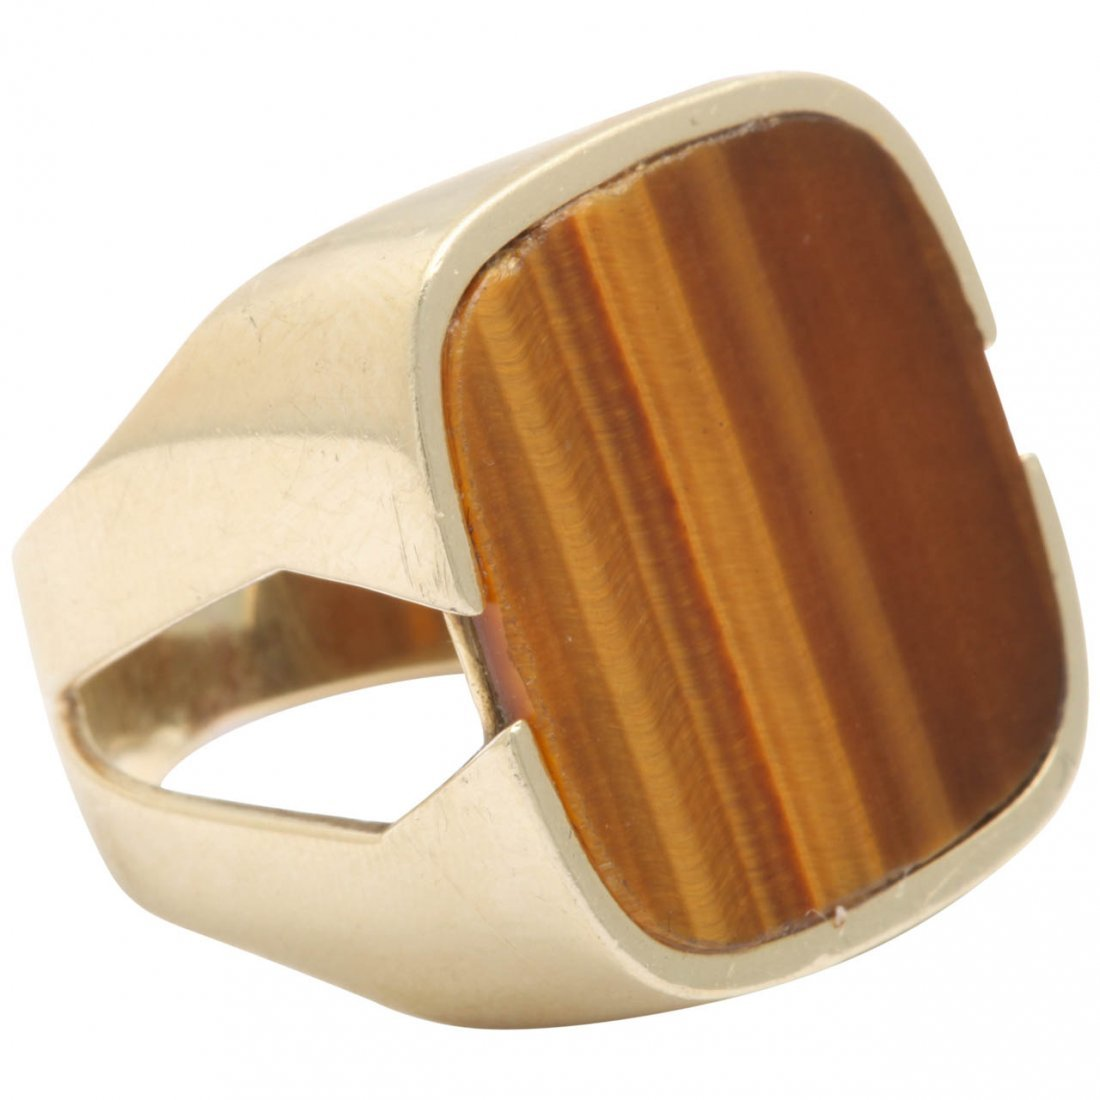 1960s Cut Out Sides Tiger's Eye Gold Gentleman's Ring